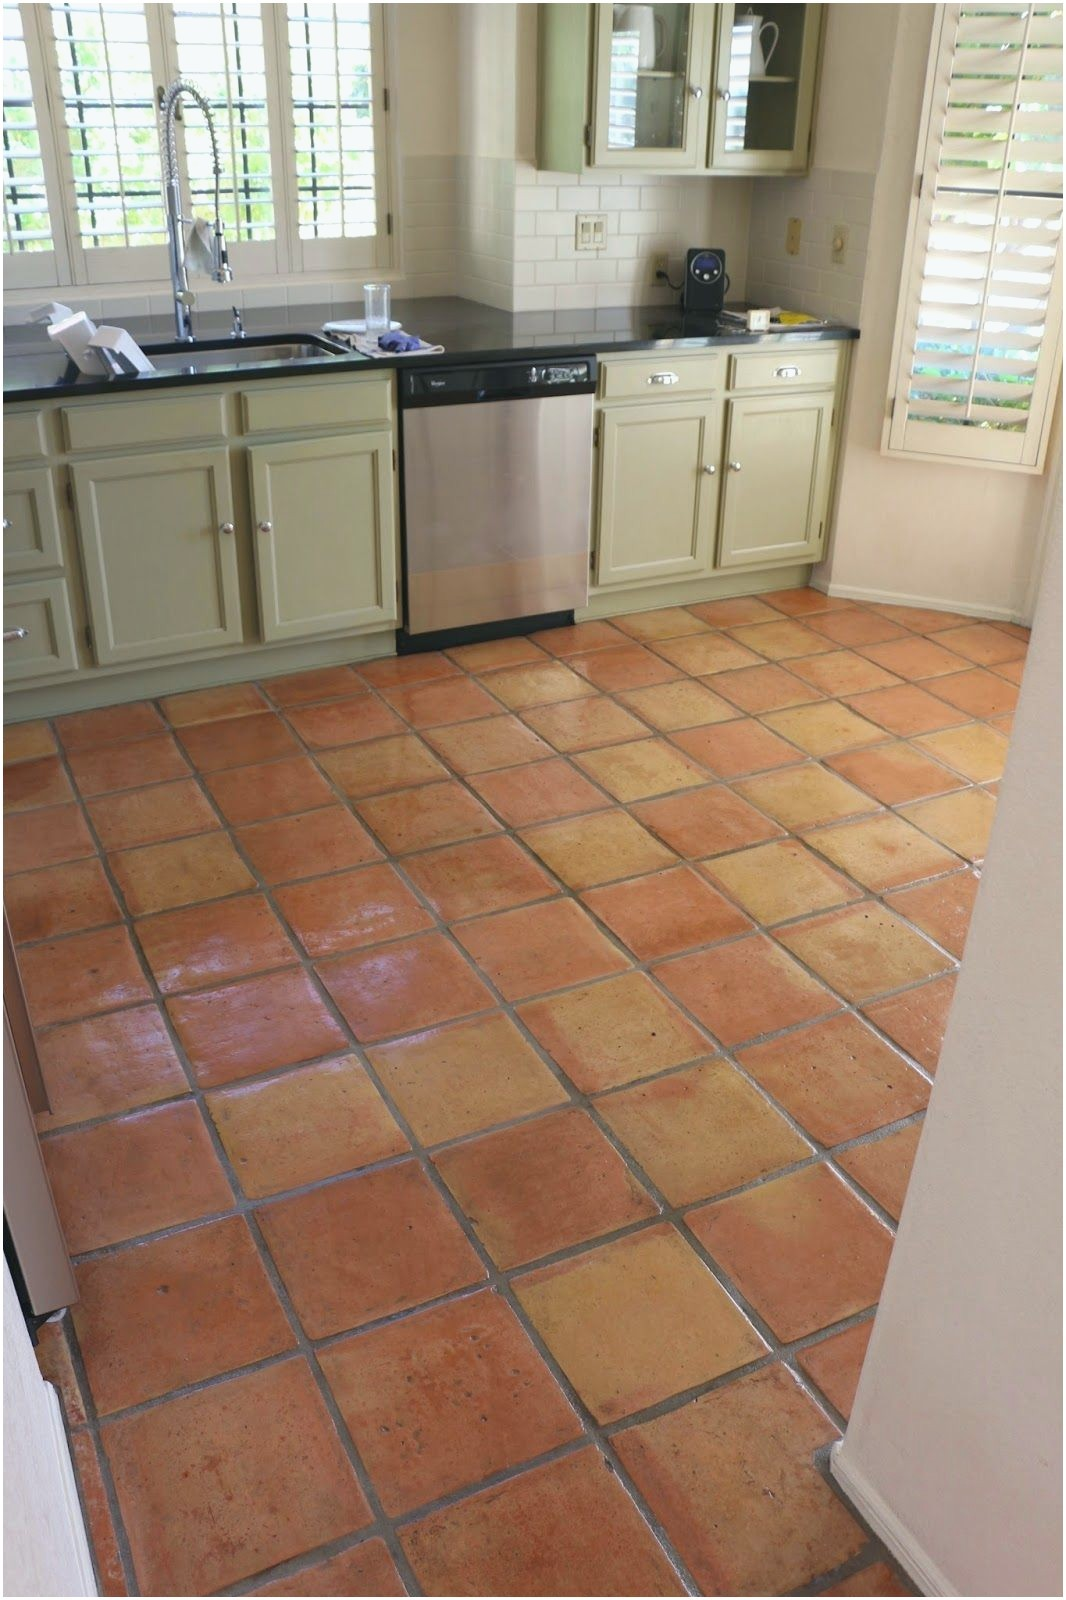 How To Seal Ceramic Tile